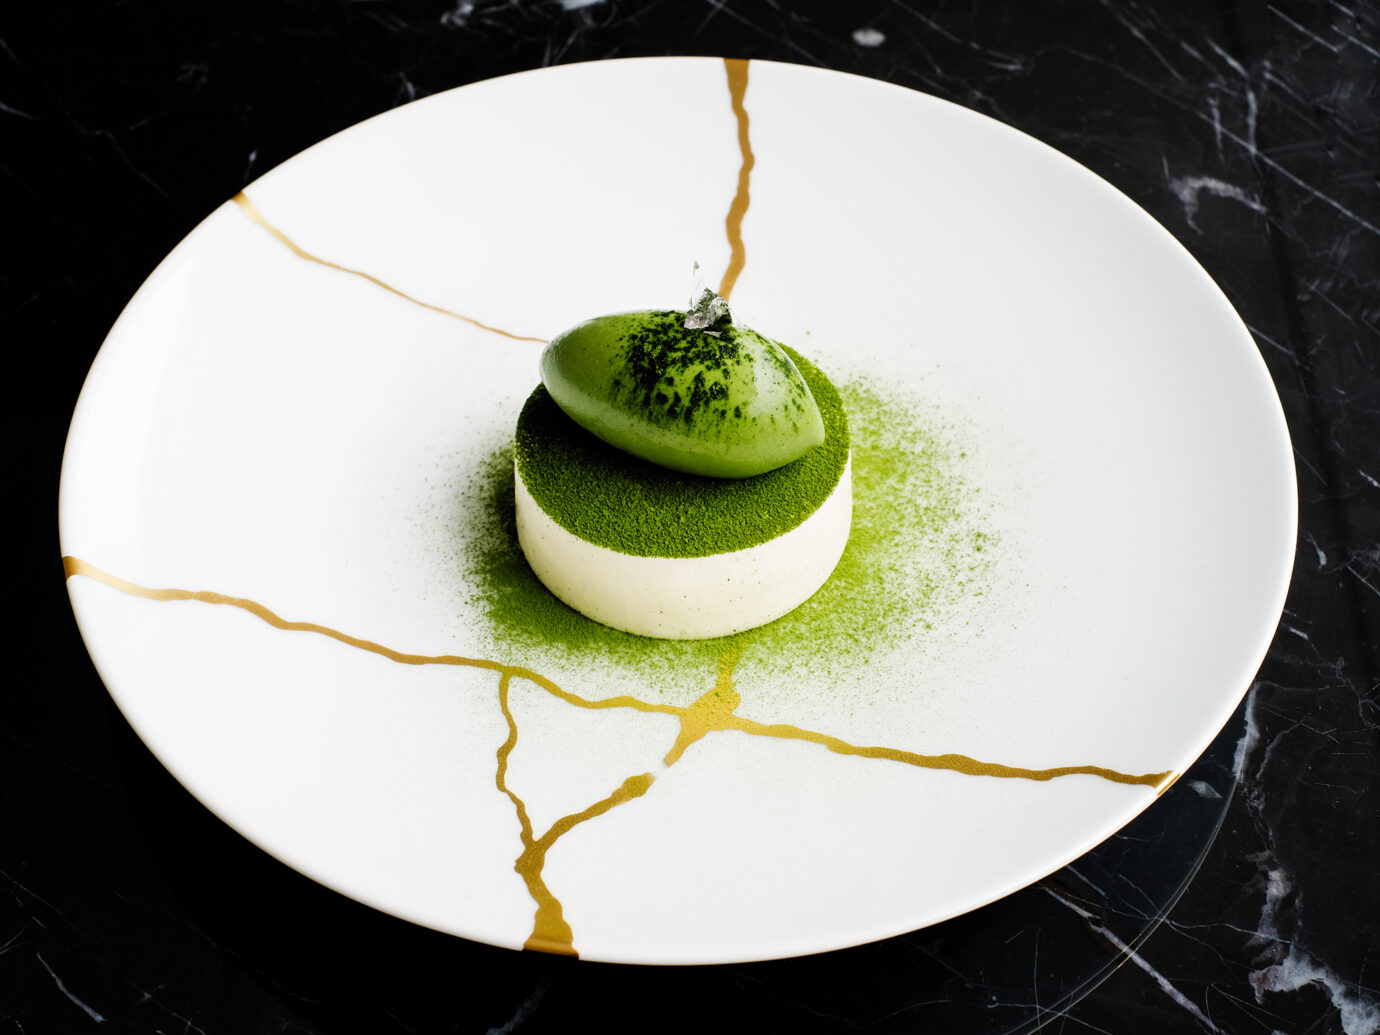 Matcha Green Tea Tiramisu with Black Sesam Crunch Inside